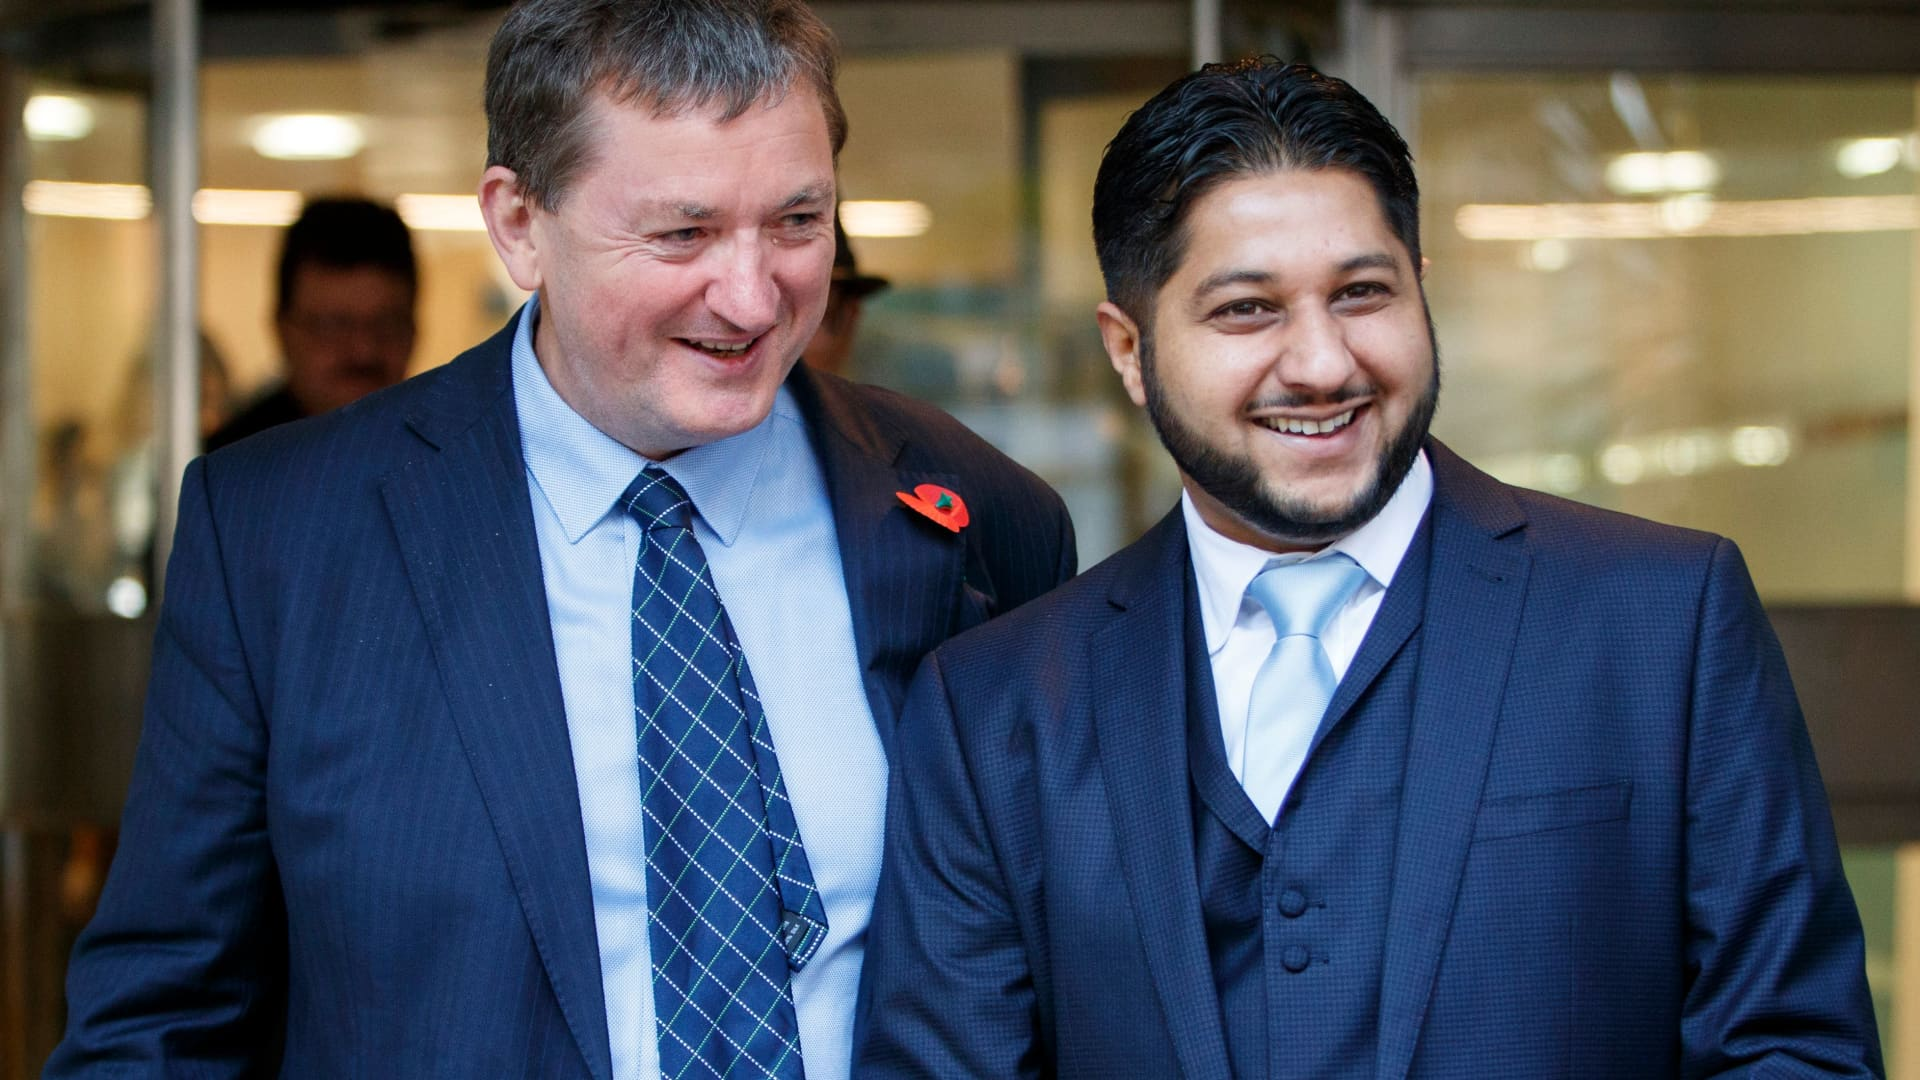 Former Uber drivers James Farrar (L) and Yaseen Aslam react as they leave the Employment Appeals Tribunal in central London on November 10, 2017.